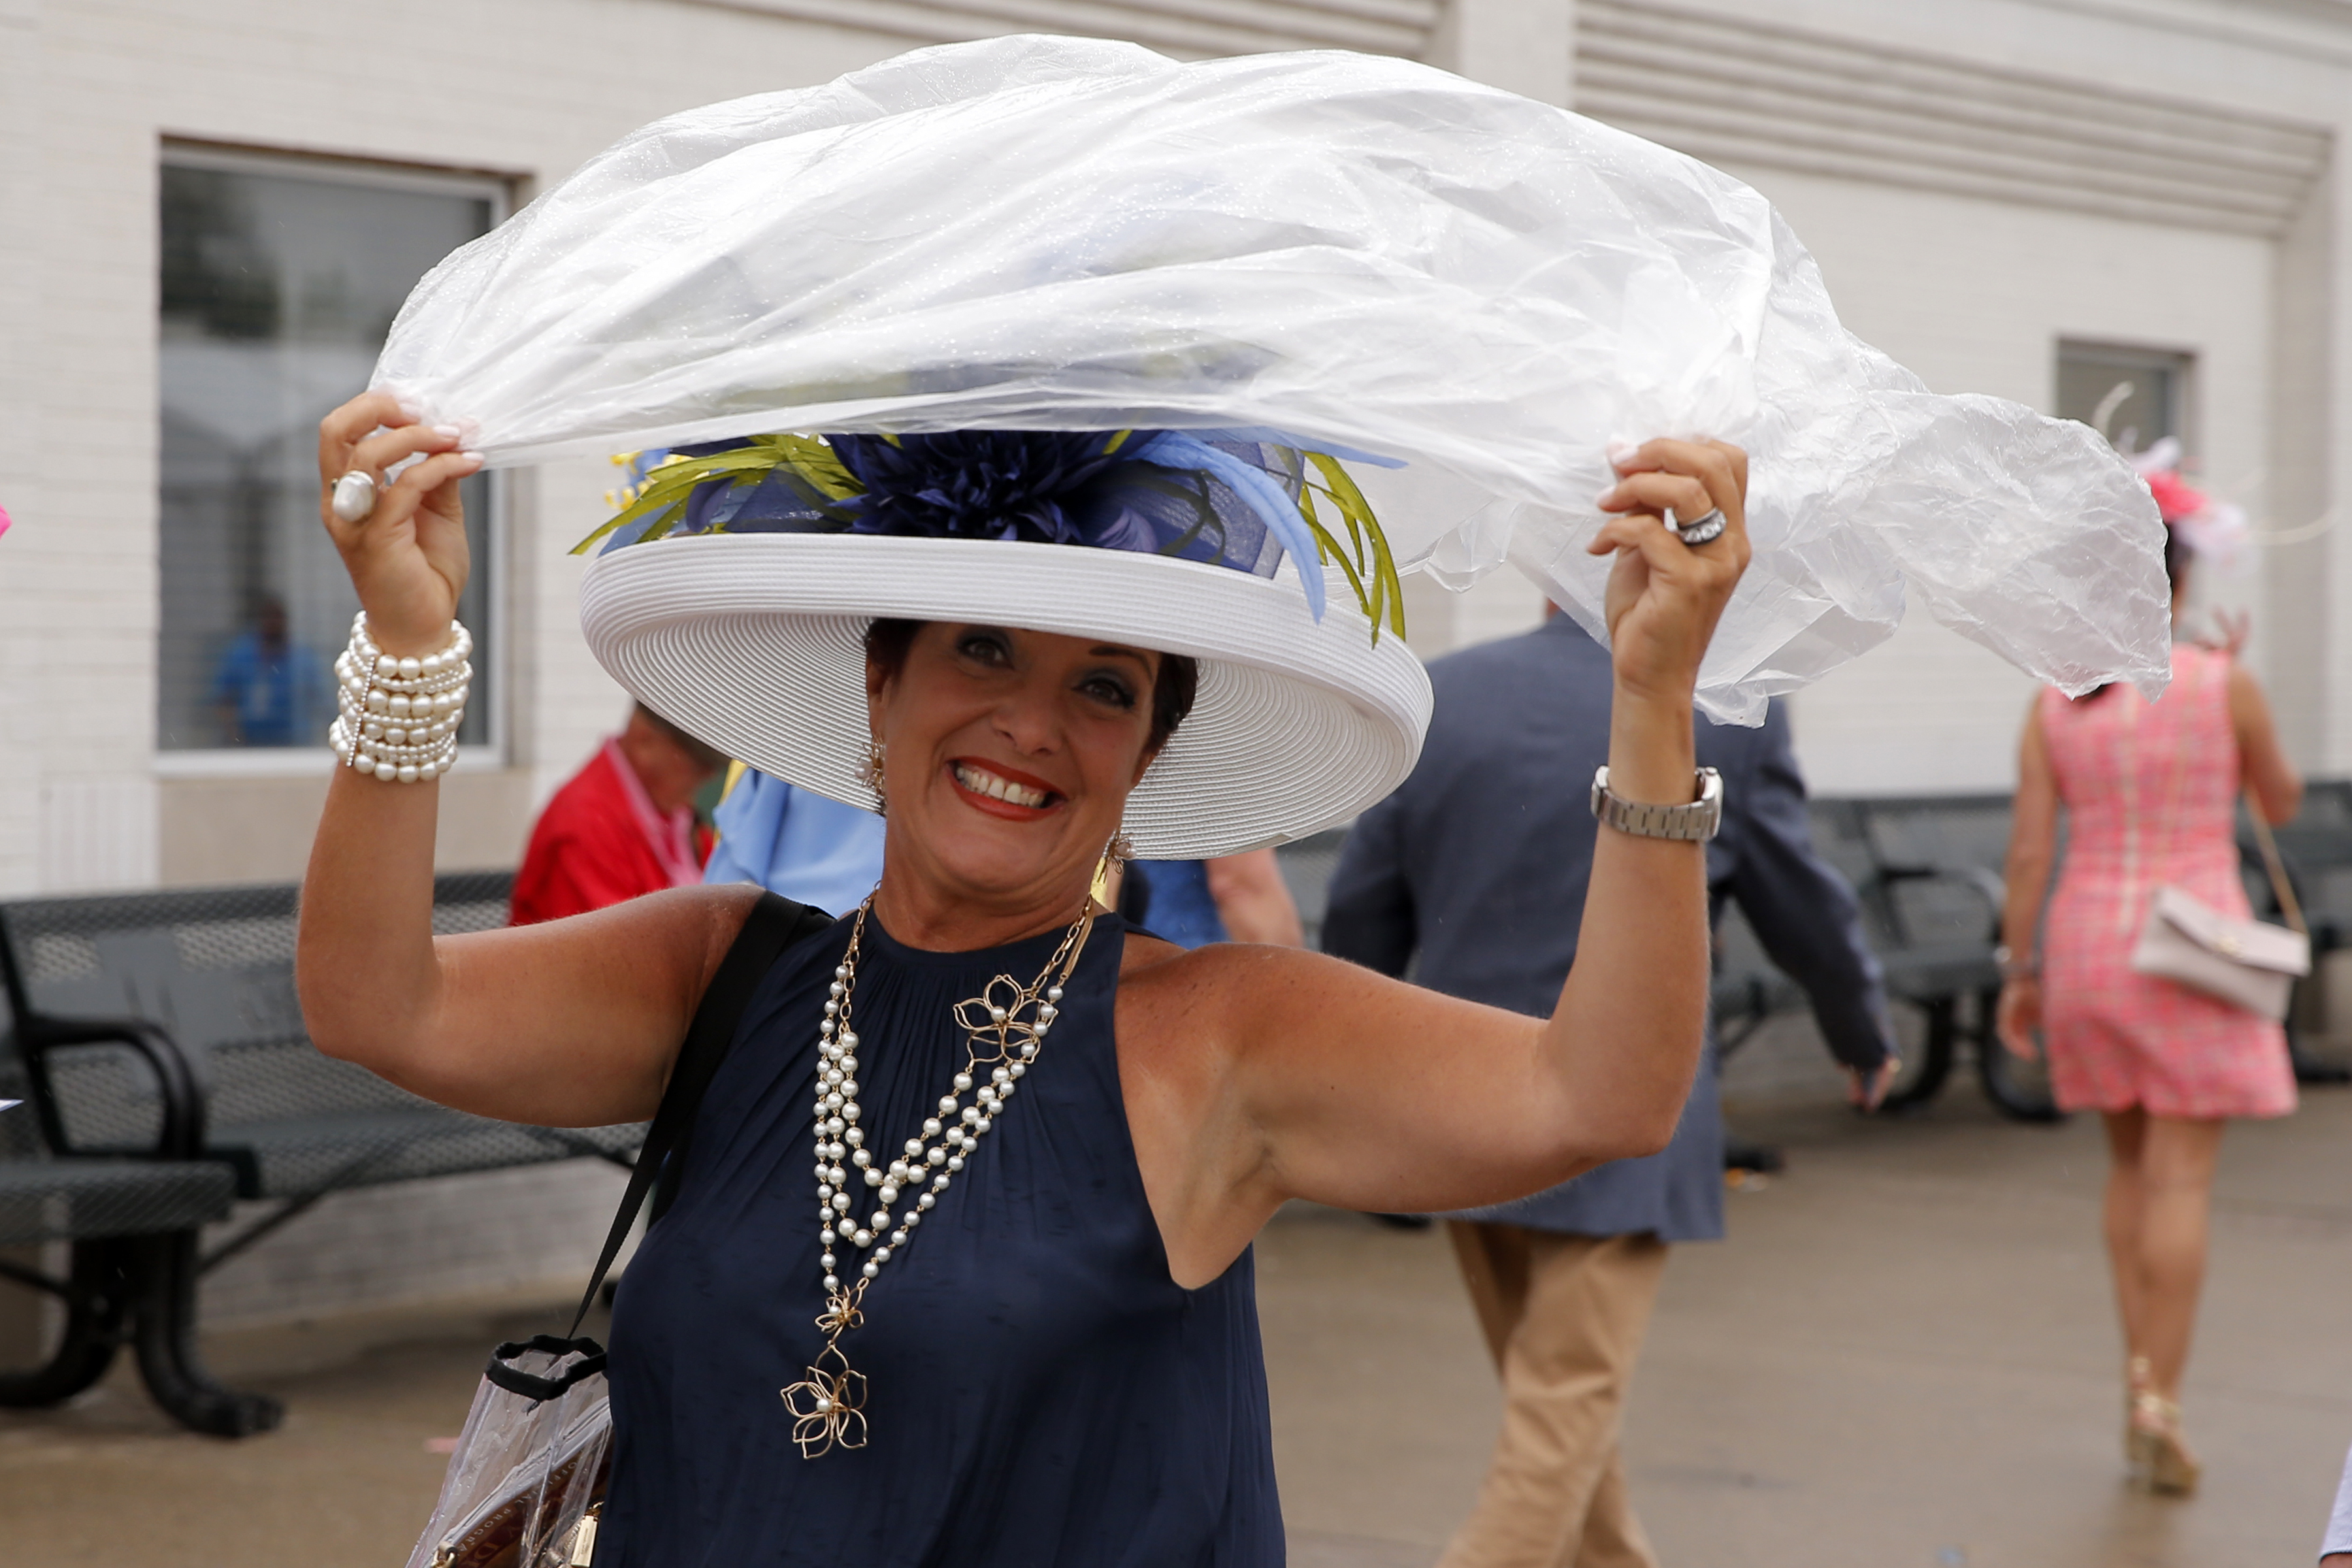 A derby fan tries to protect her hat from the rain during the 144th running of the Kentucky Derby at Churchill Downs on May 5th, 2018 in Louisville, Kentucky.